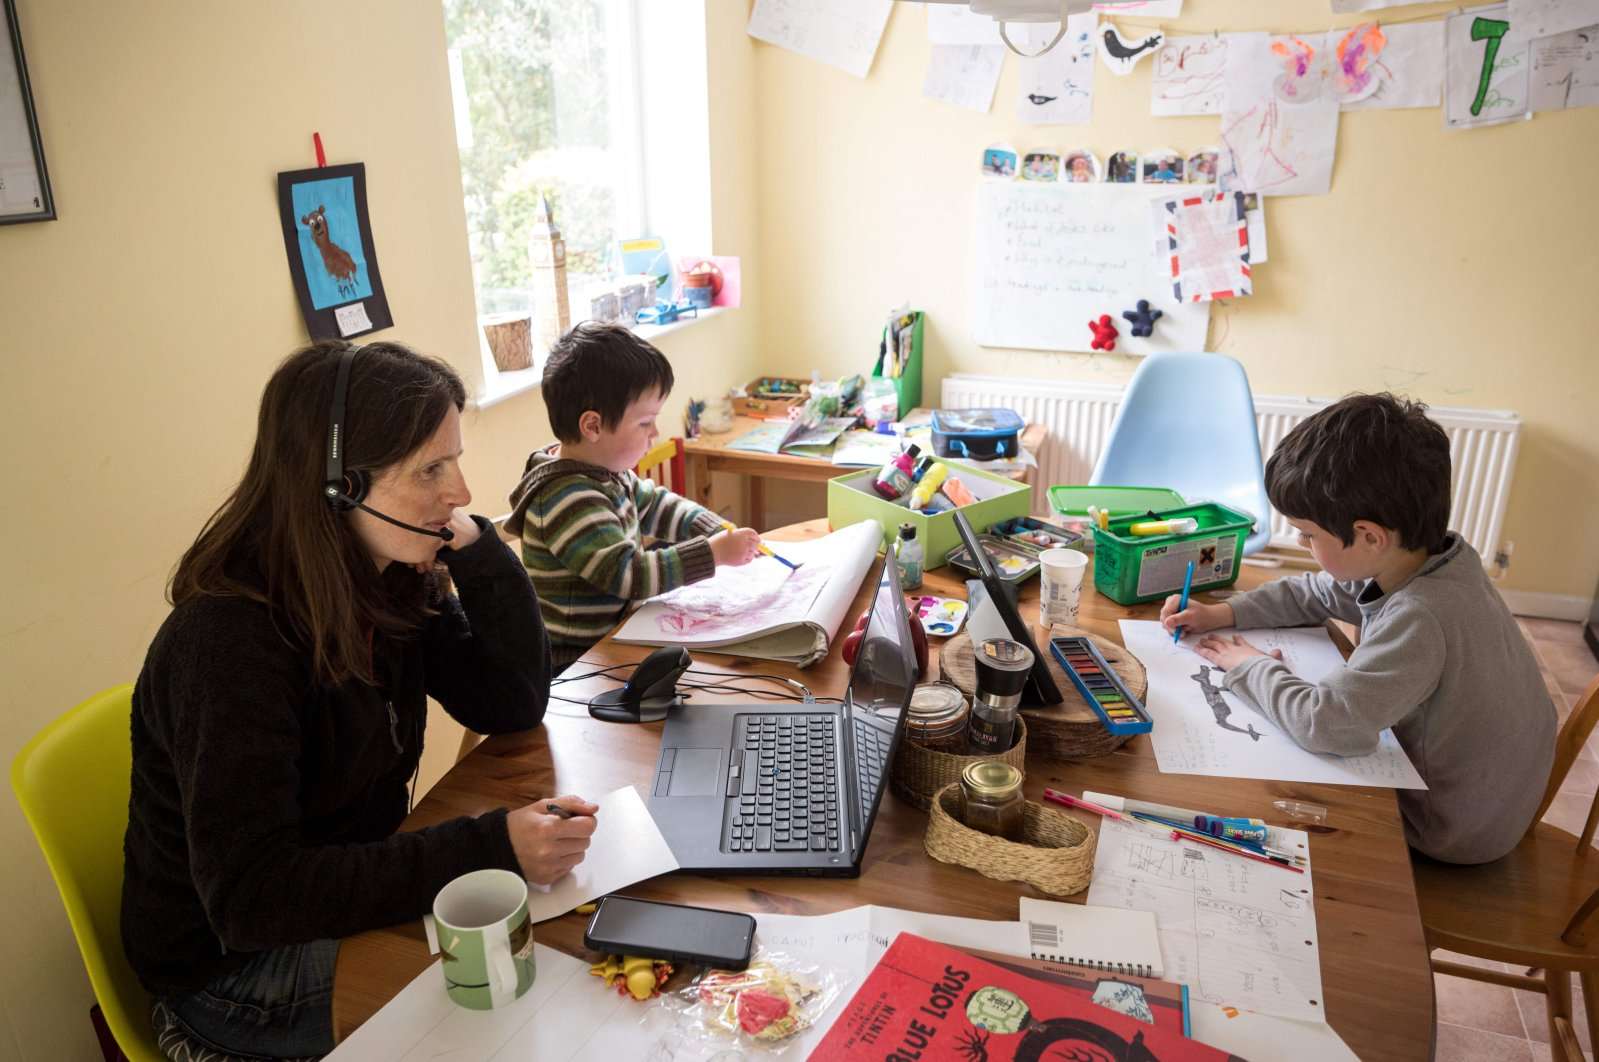 Homeschooling typically adds to the mother's working day, not the father's. (AFP Photo)